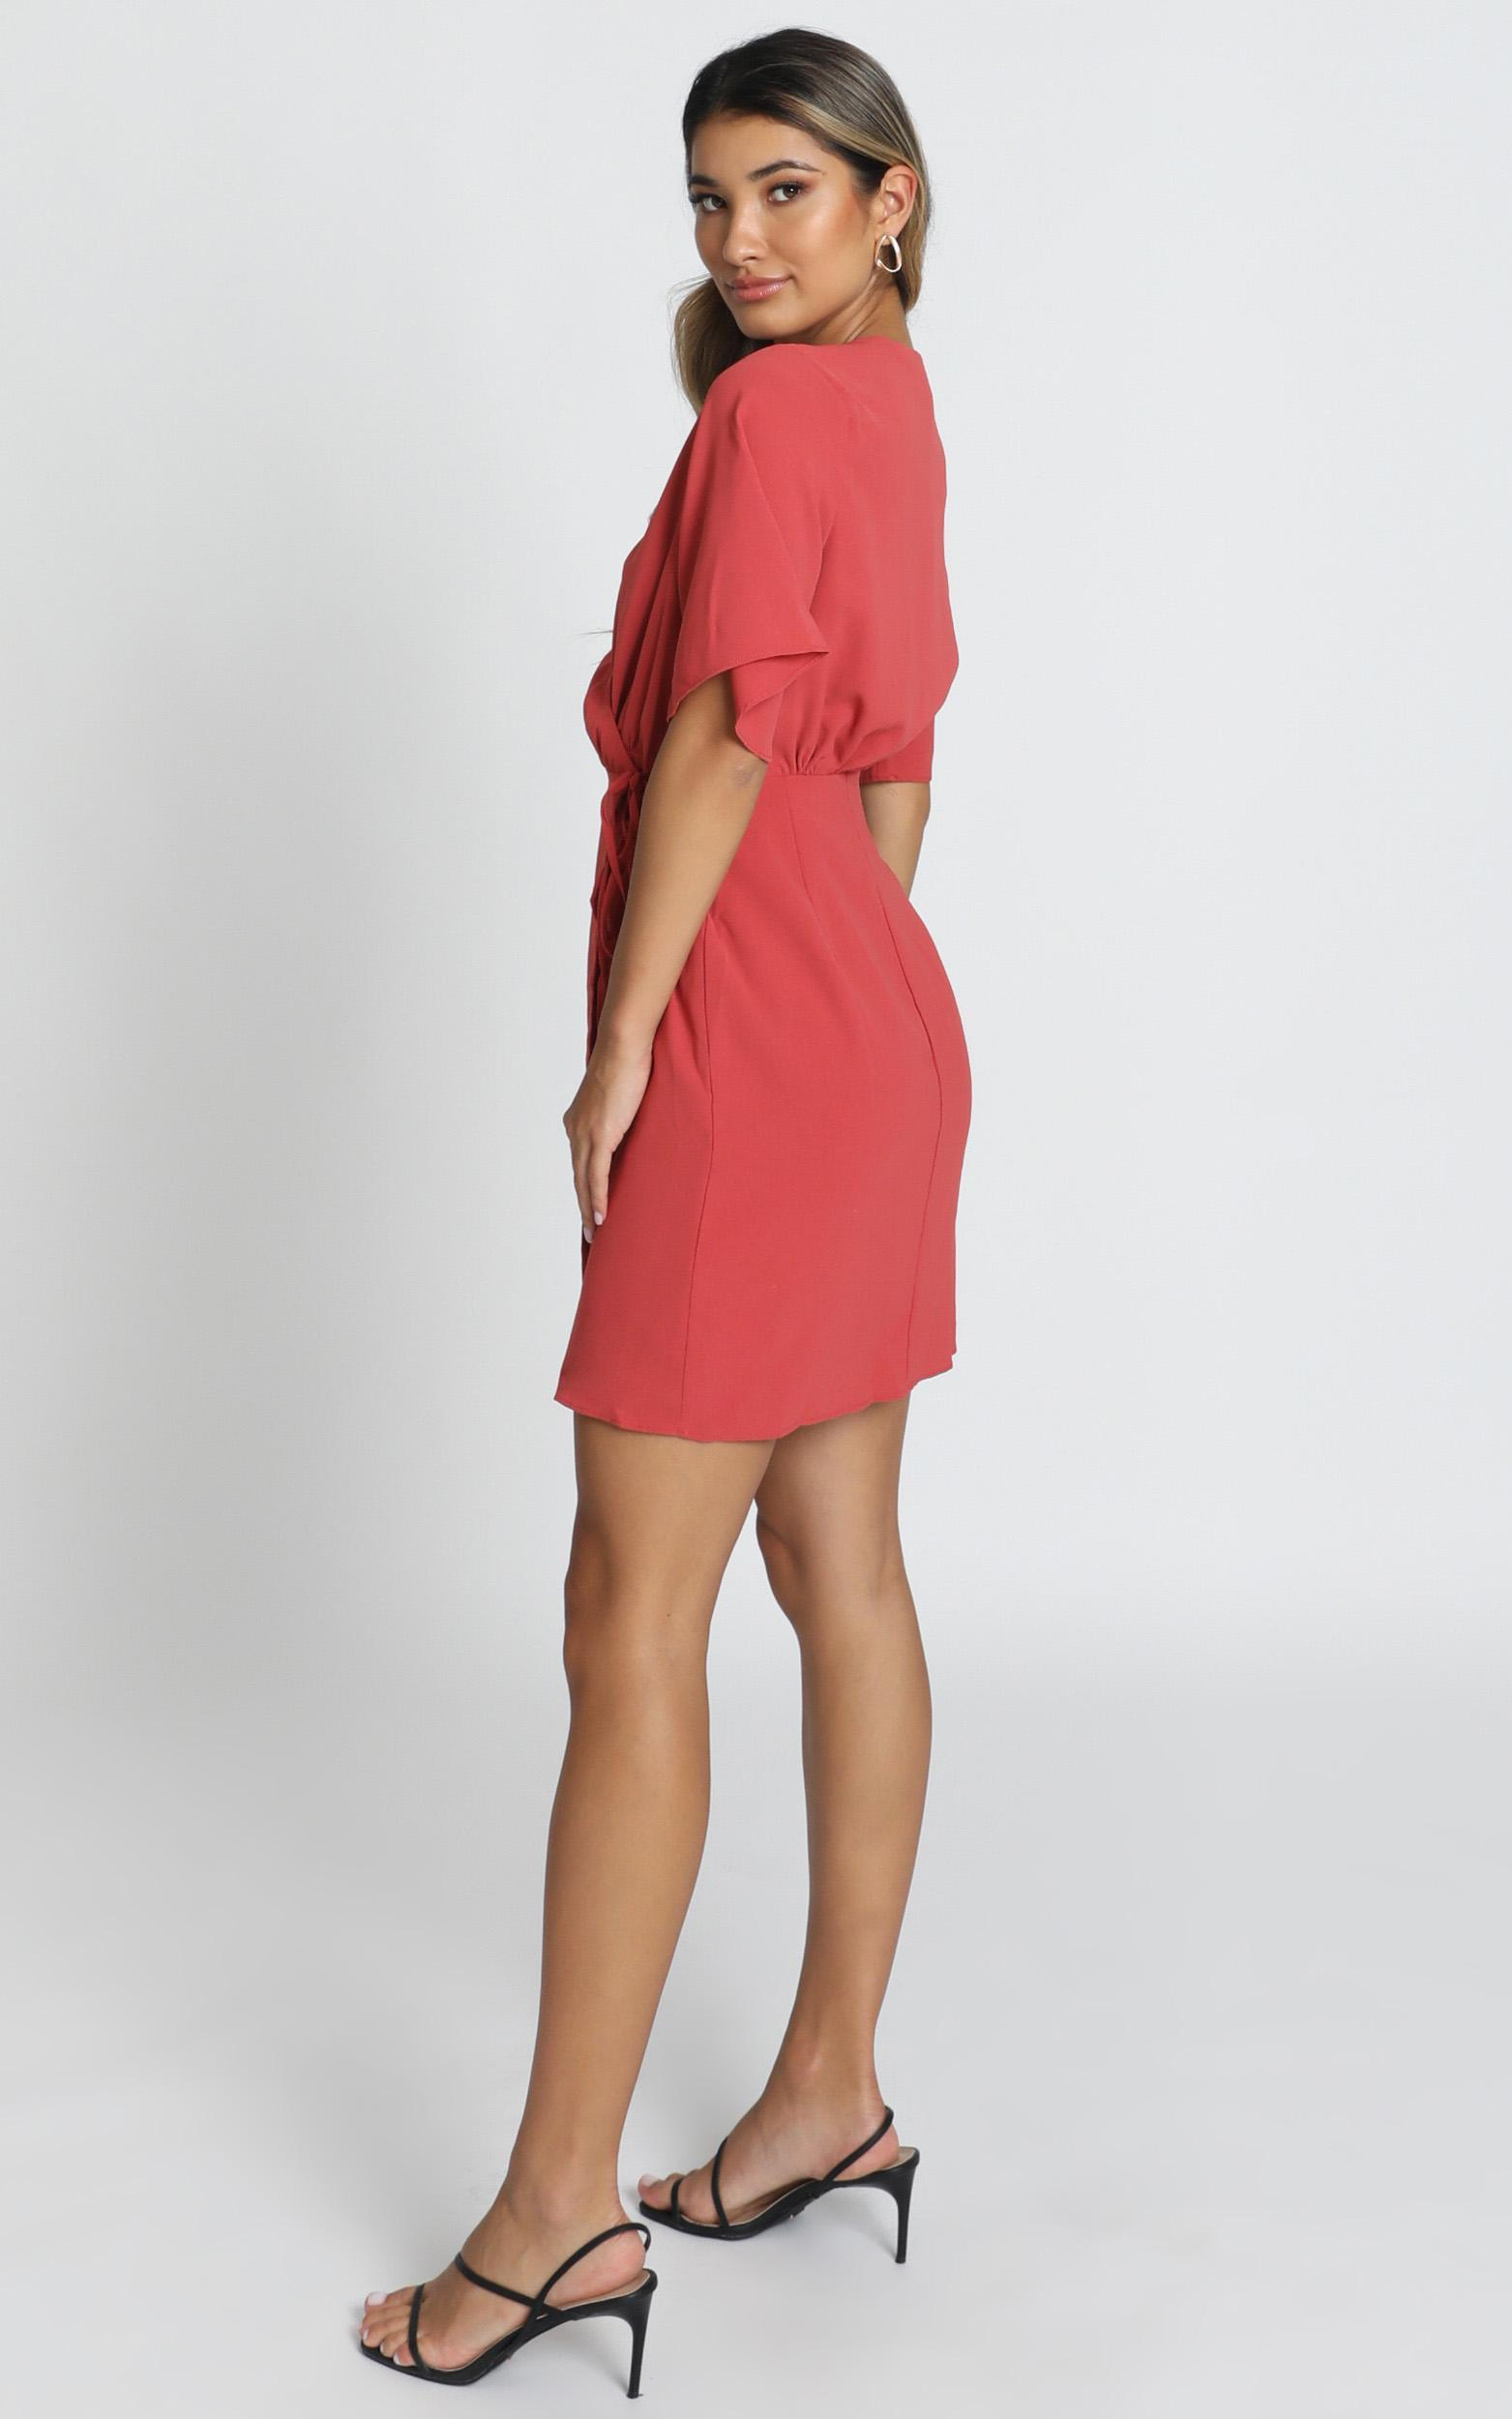 New Memo Dress in dusty rose - 20 (XXXXL), Pink, hi-res image number null